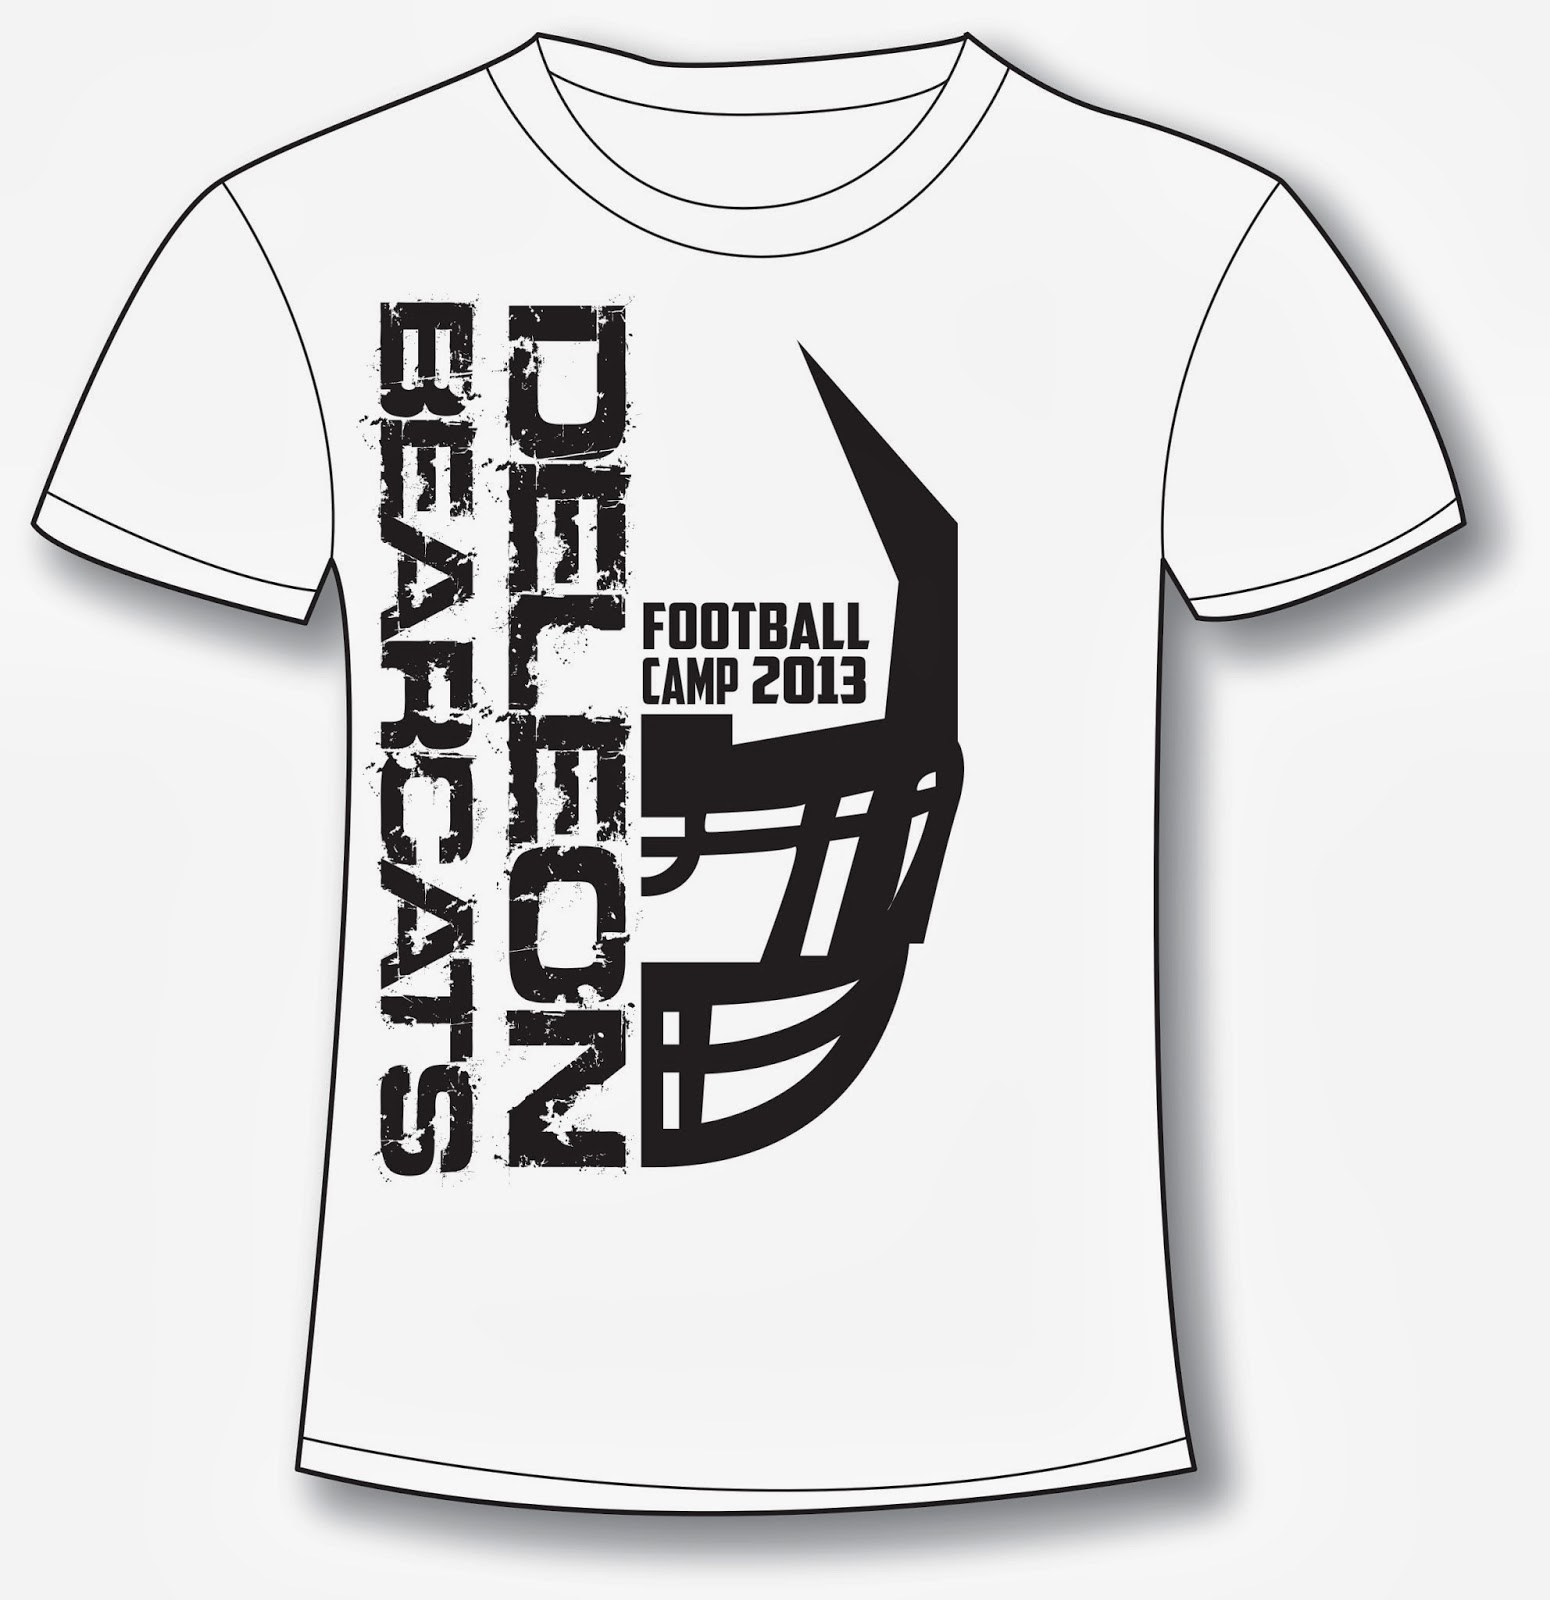 shirt football t shirts more football shirt designs football ideas - T Shirts Design Ideas